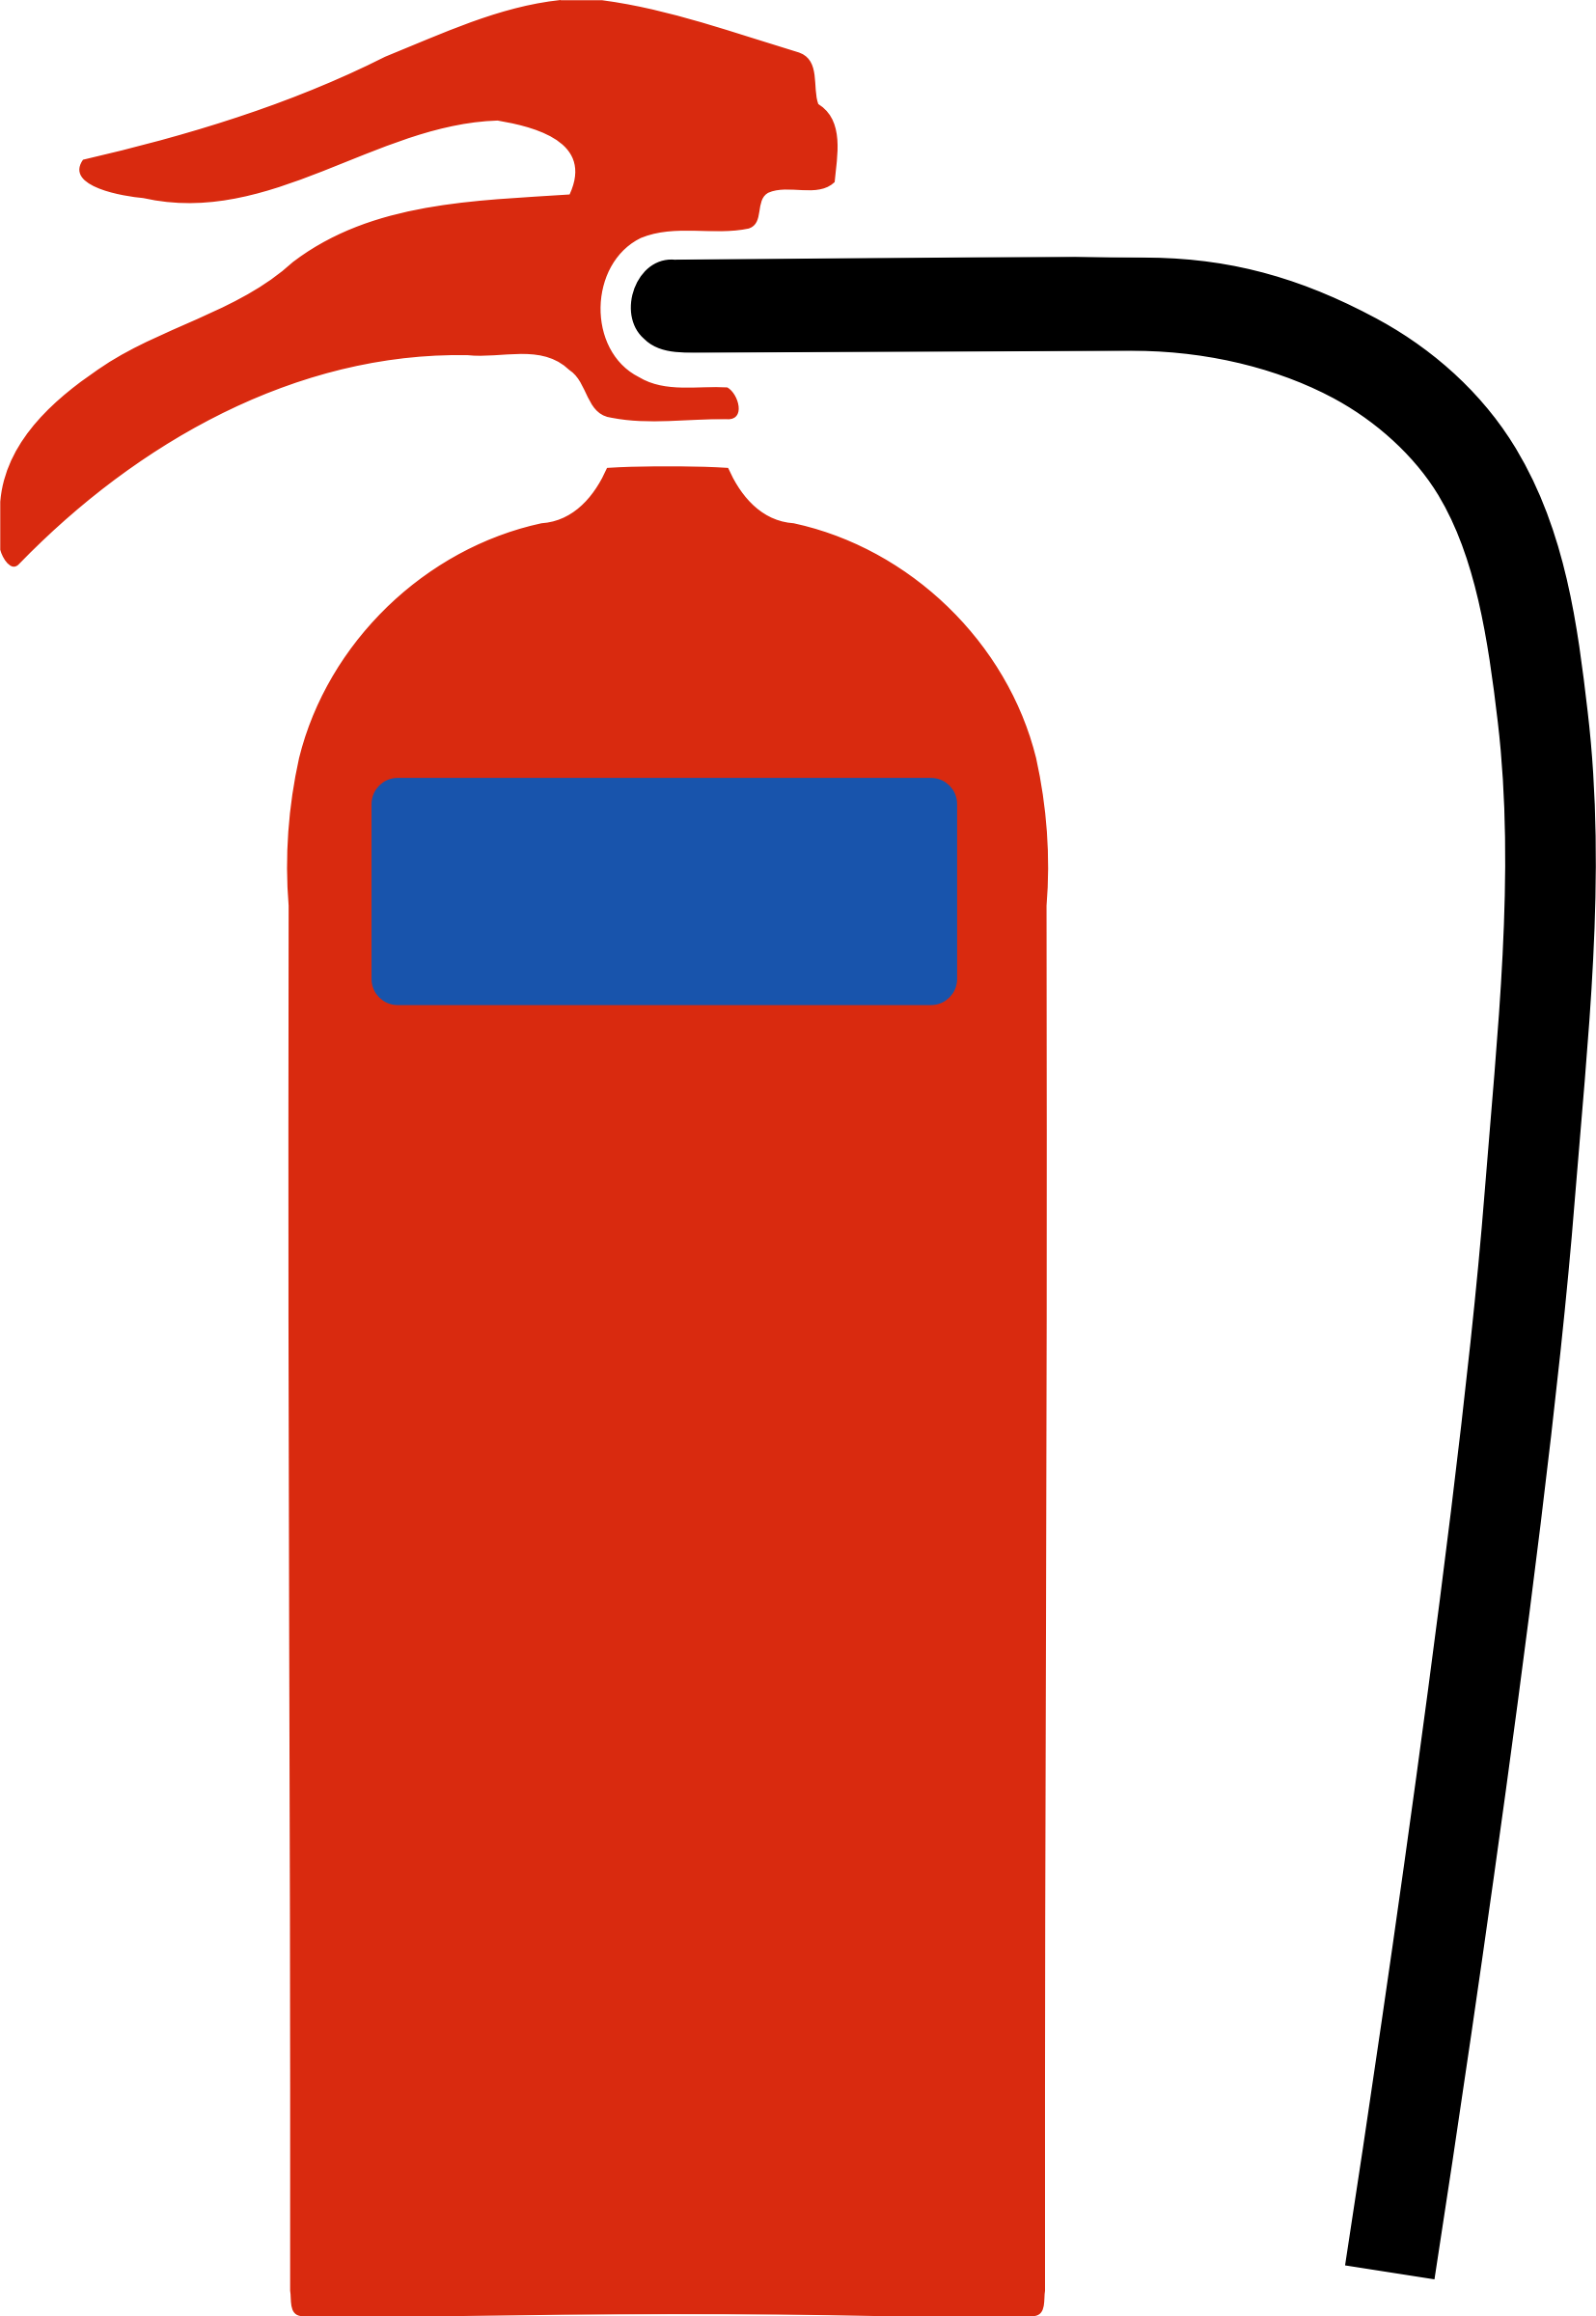 Fireman clipart extinguisher. Fire group powder